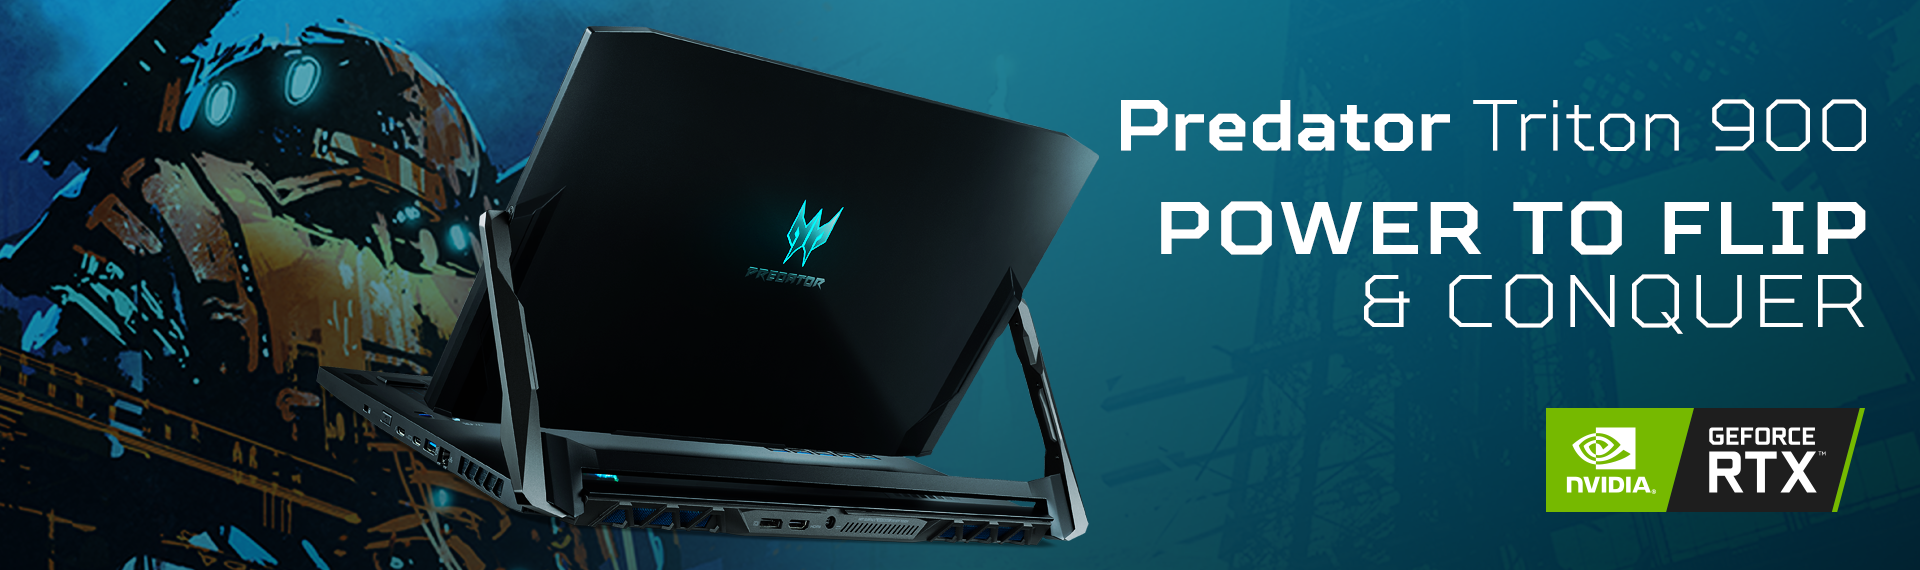 Predator Triton 900 Intel 9th Gen, Laptop Gaming yang Punya Jeroan Cadas!